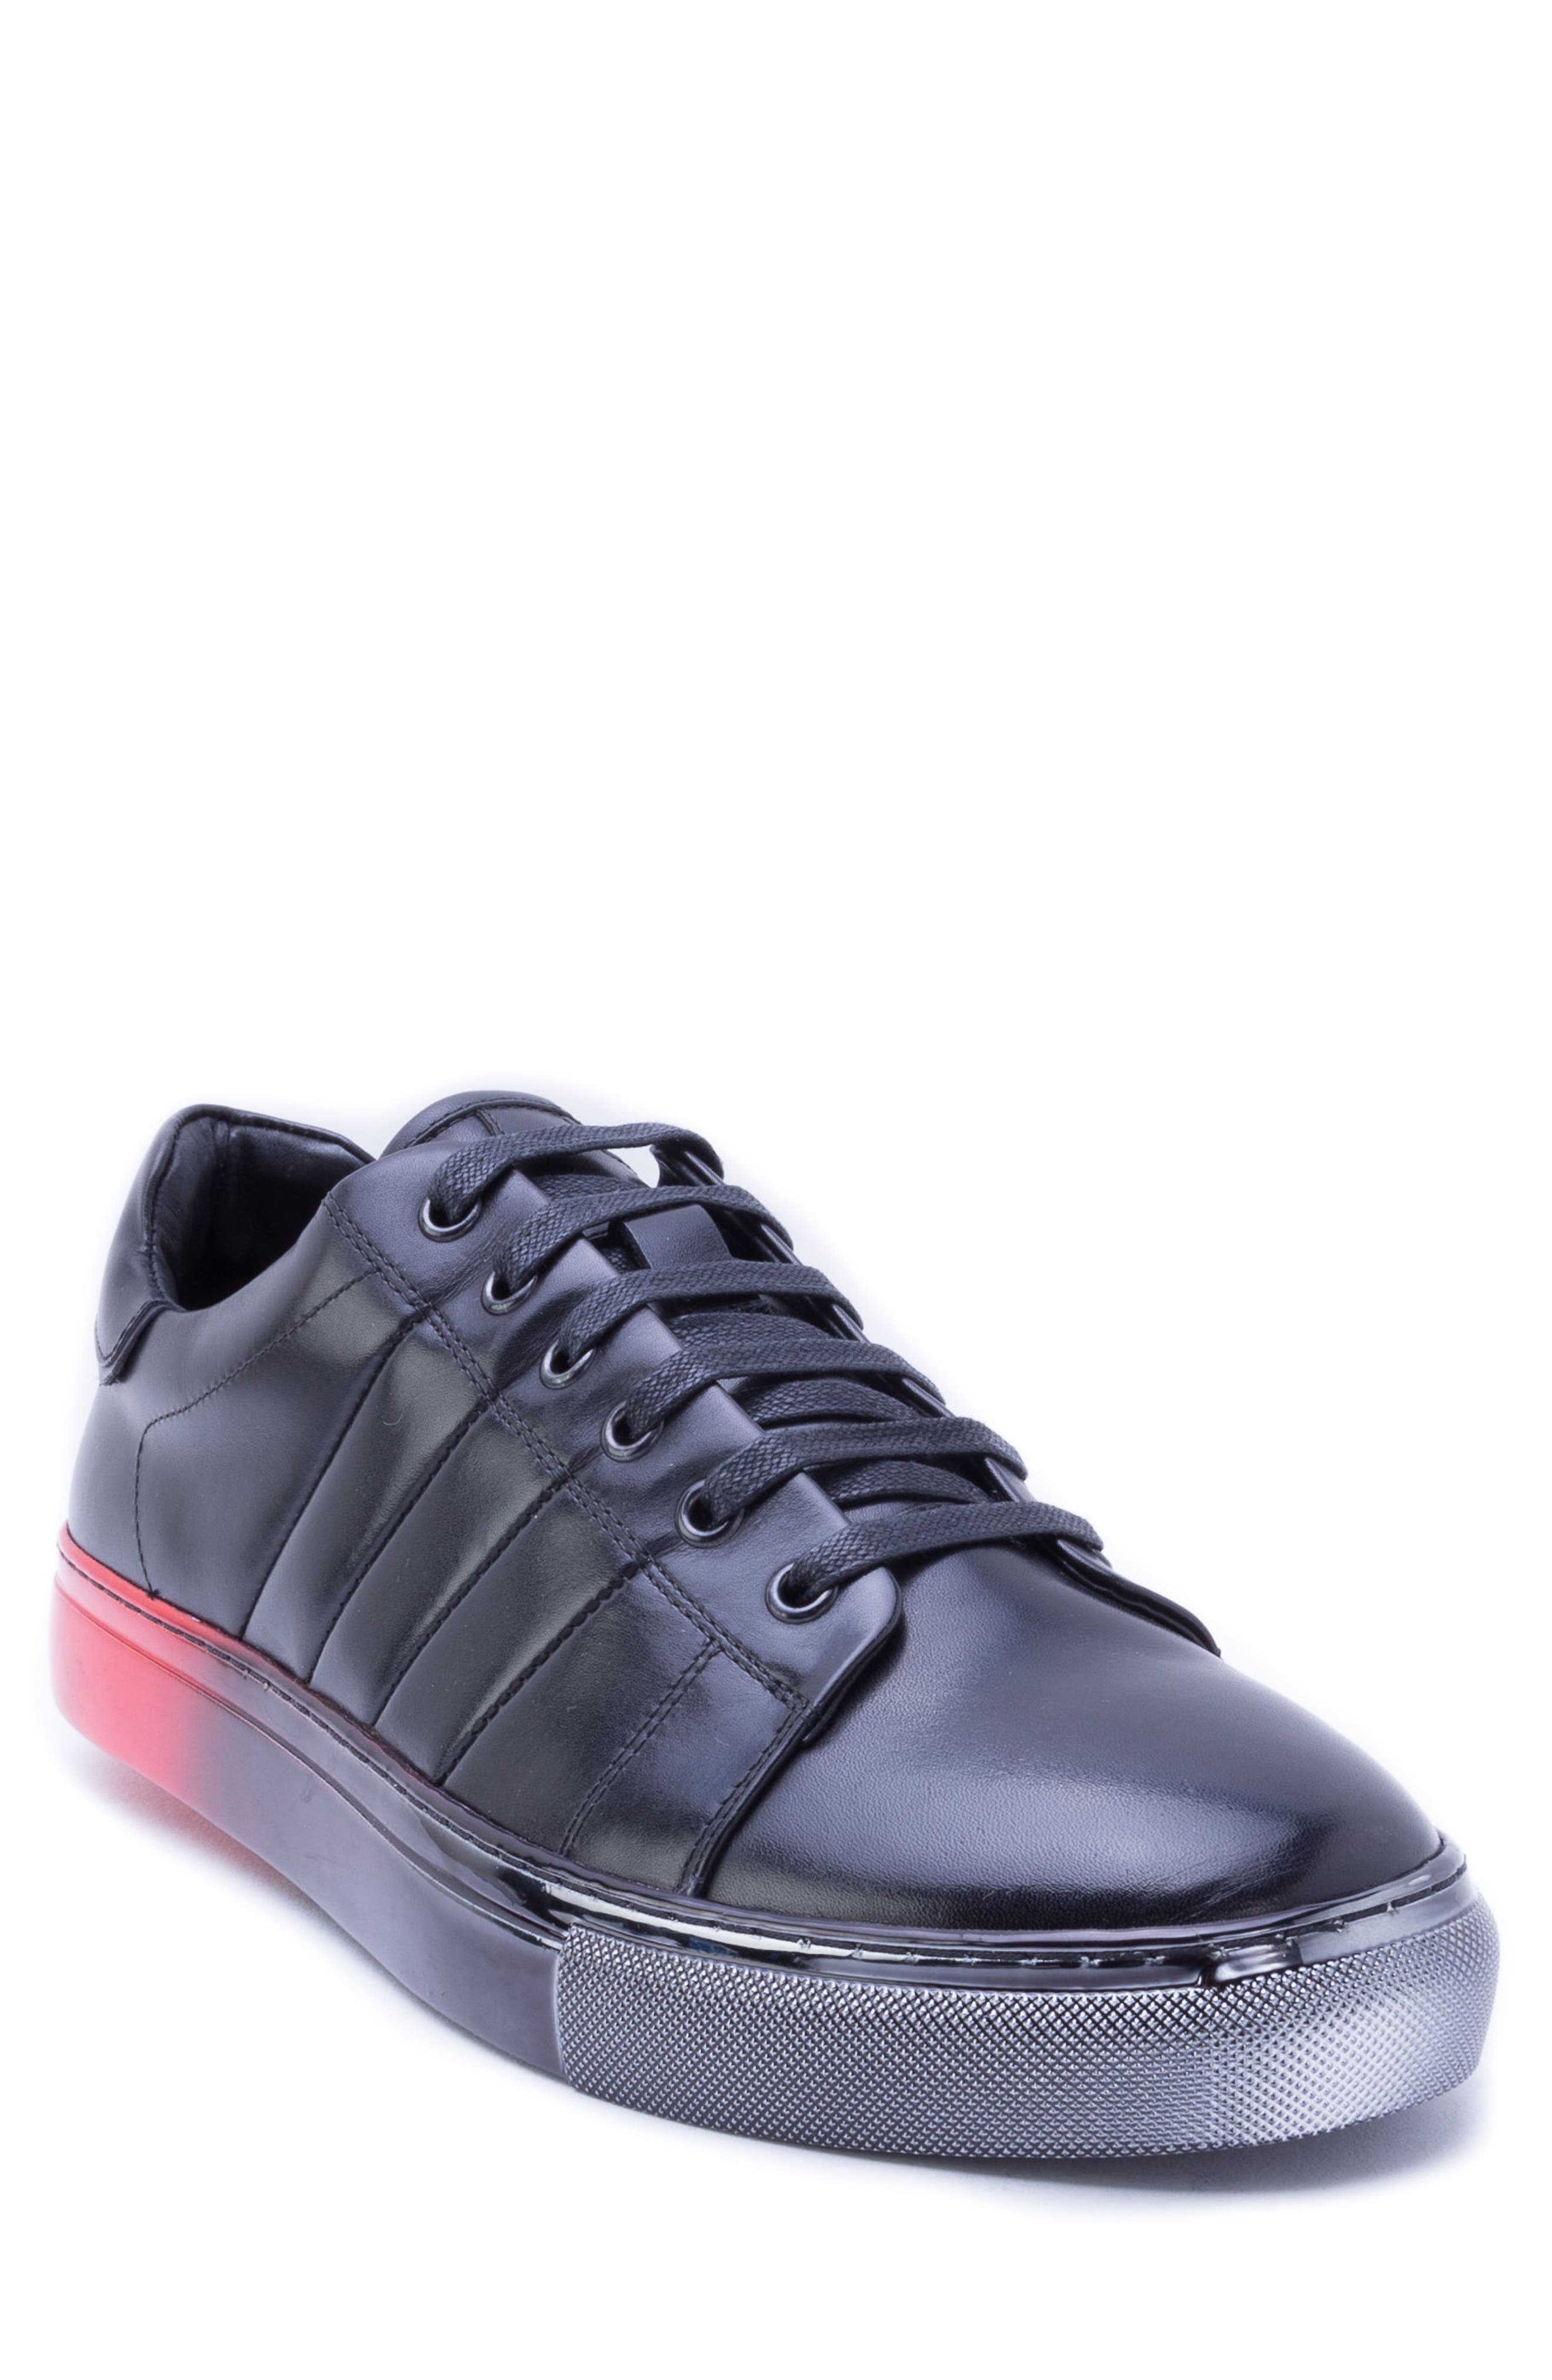 Duvall Sneaker,                             Main thumbnail 1, color,                             BLACK LEATHER